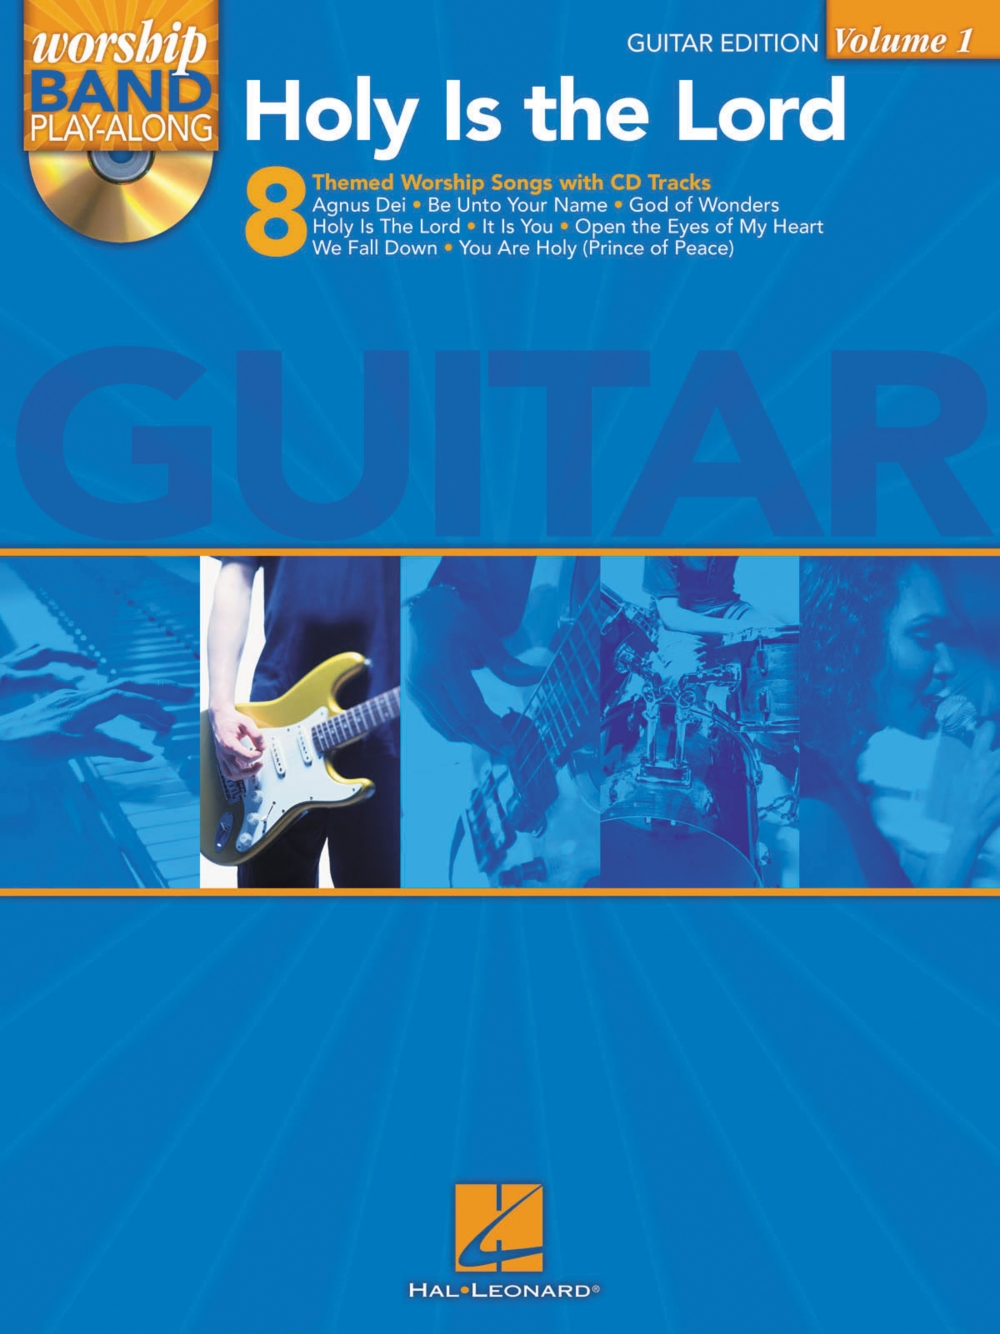 Hal Leonard Holy Is The Lord Guitar Edition Worship Band Play